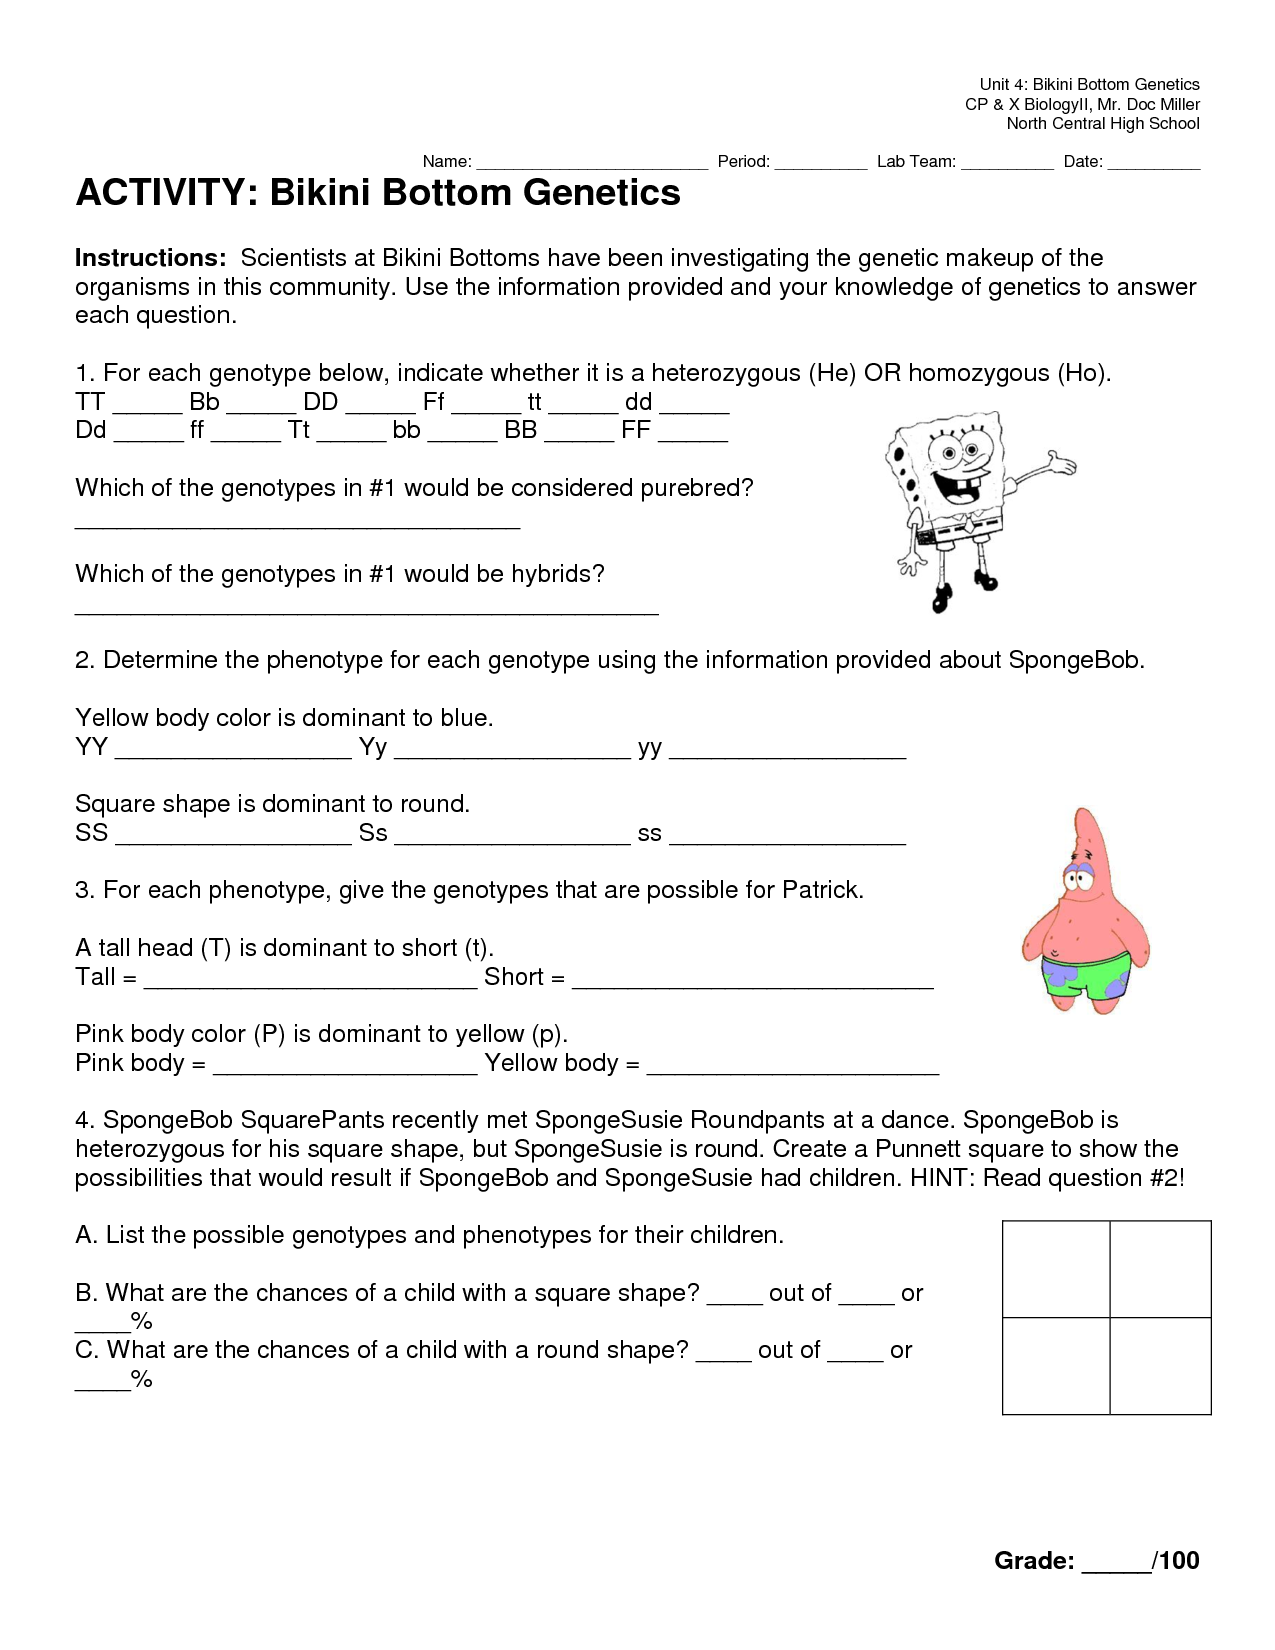 Free Worksheet Genetics Vocabulary Worksheet genetics vocabulary crossword puzzle 34 key terms activities spongebob google search